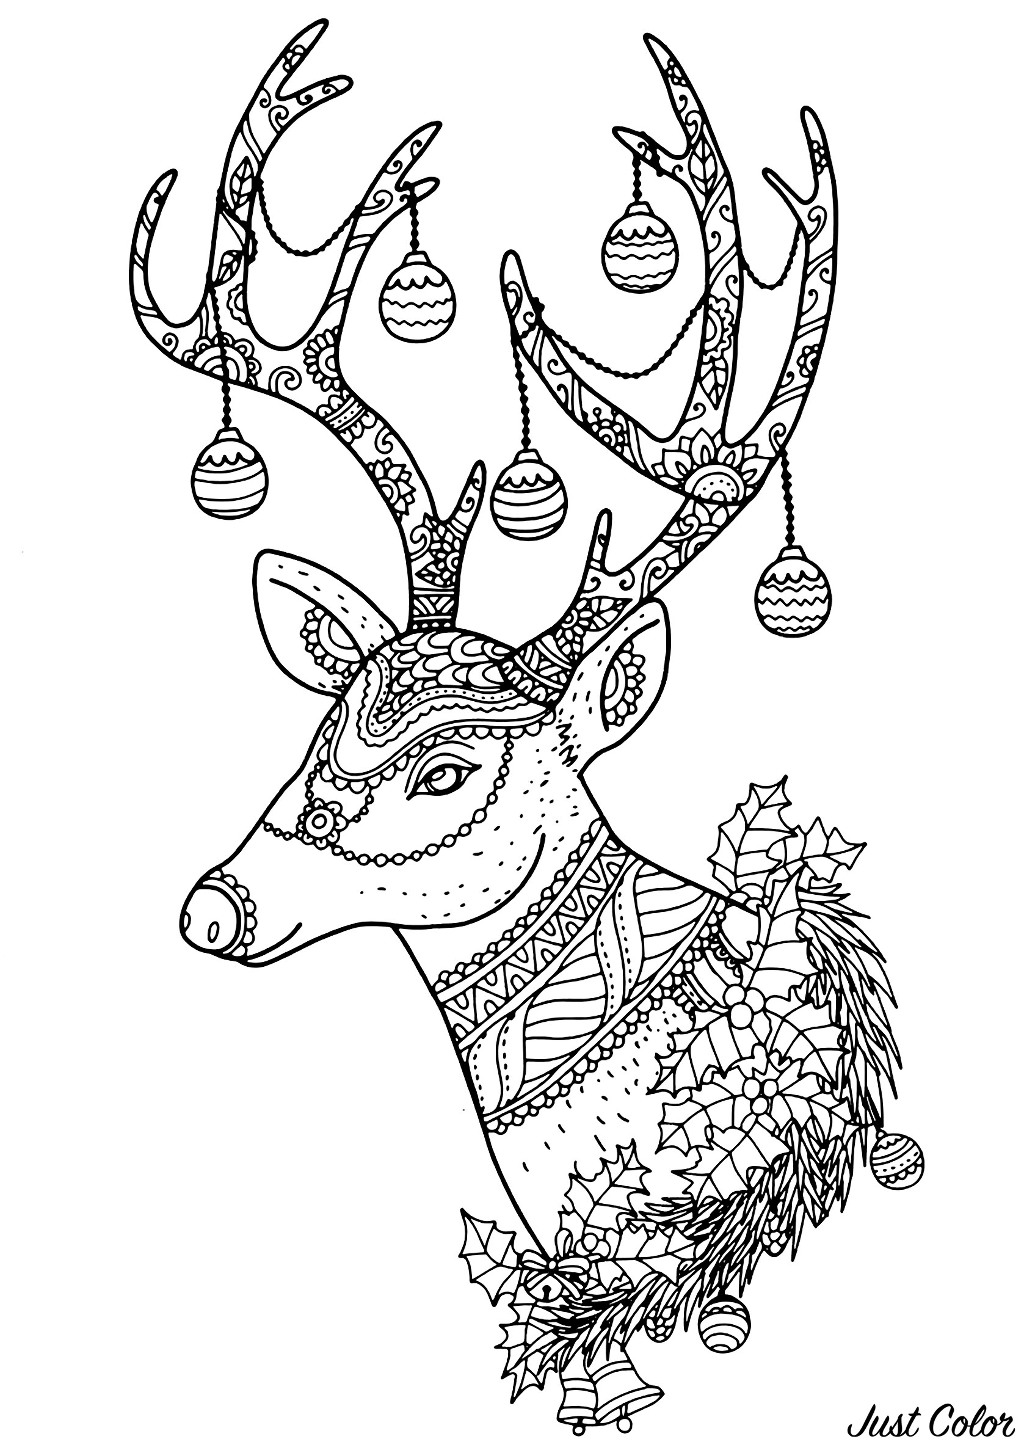 Christmas Reindeer, with beautiful patterns